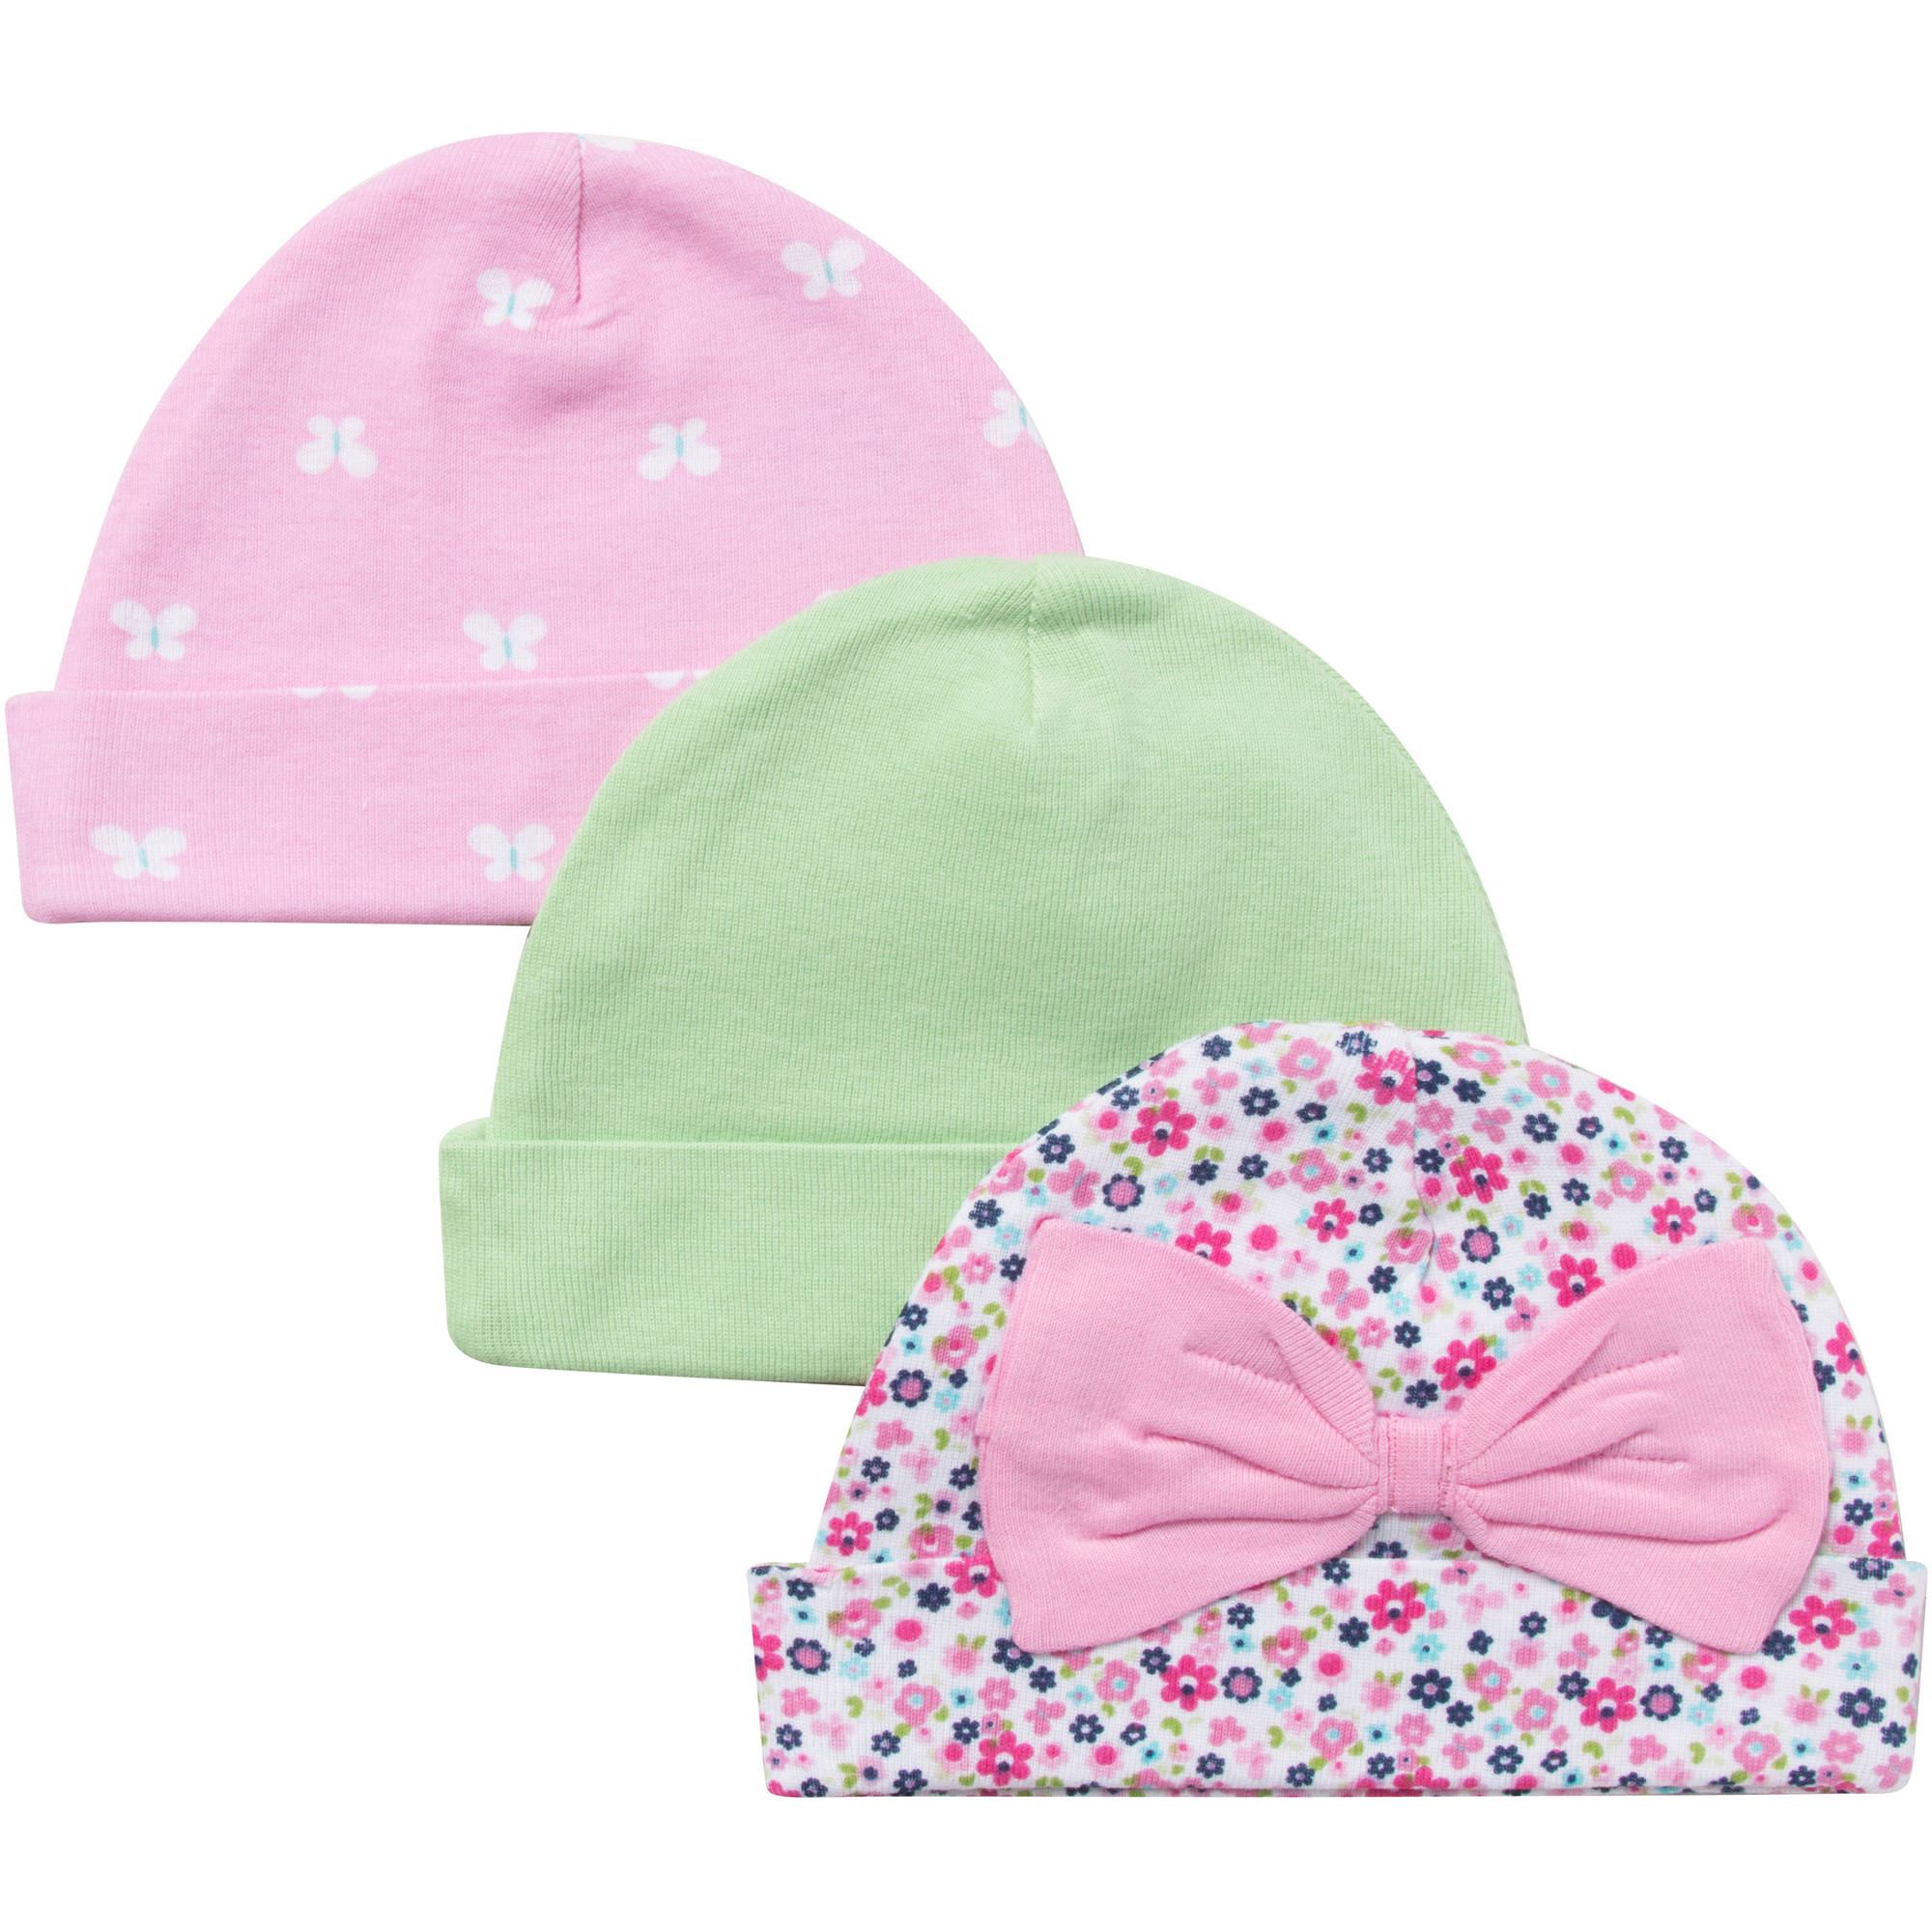 Gerber Newborn Baby Girl Butterfly Caps - 3 Pack